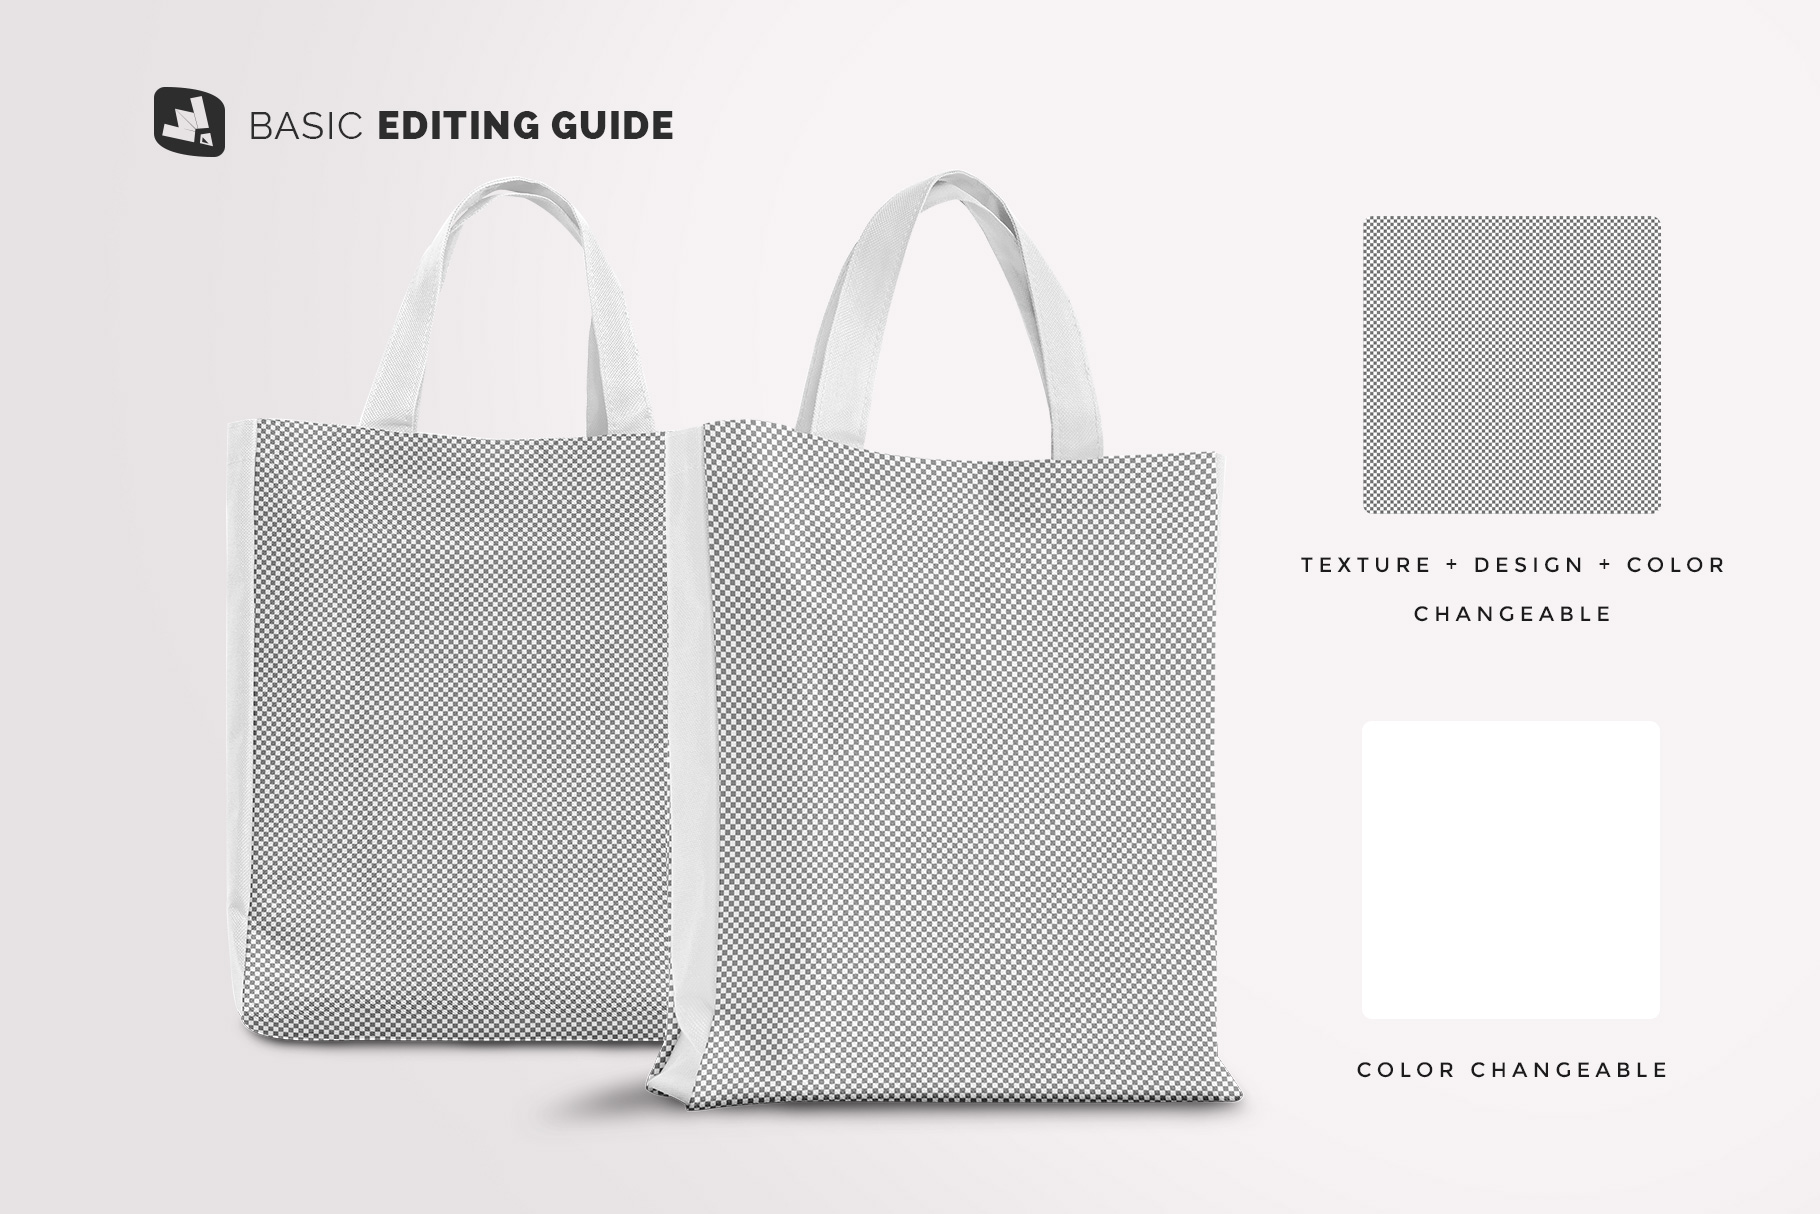 editability of the front view canvas bag mockup